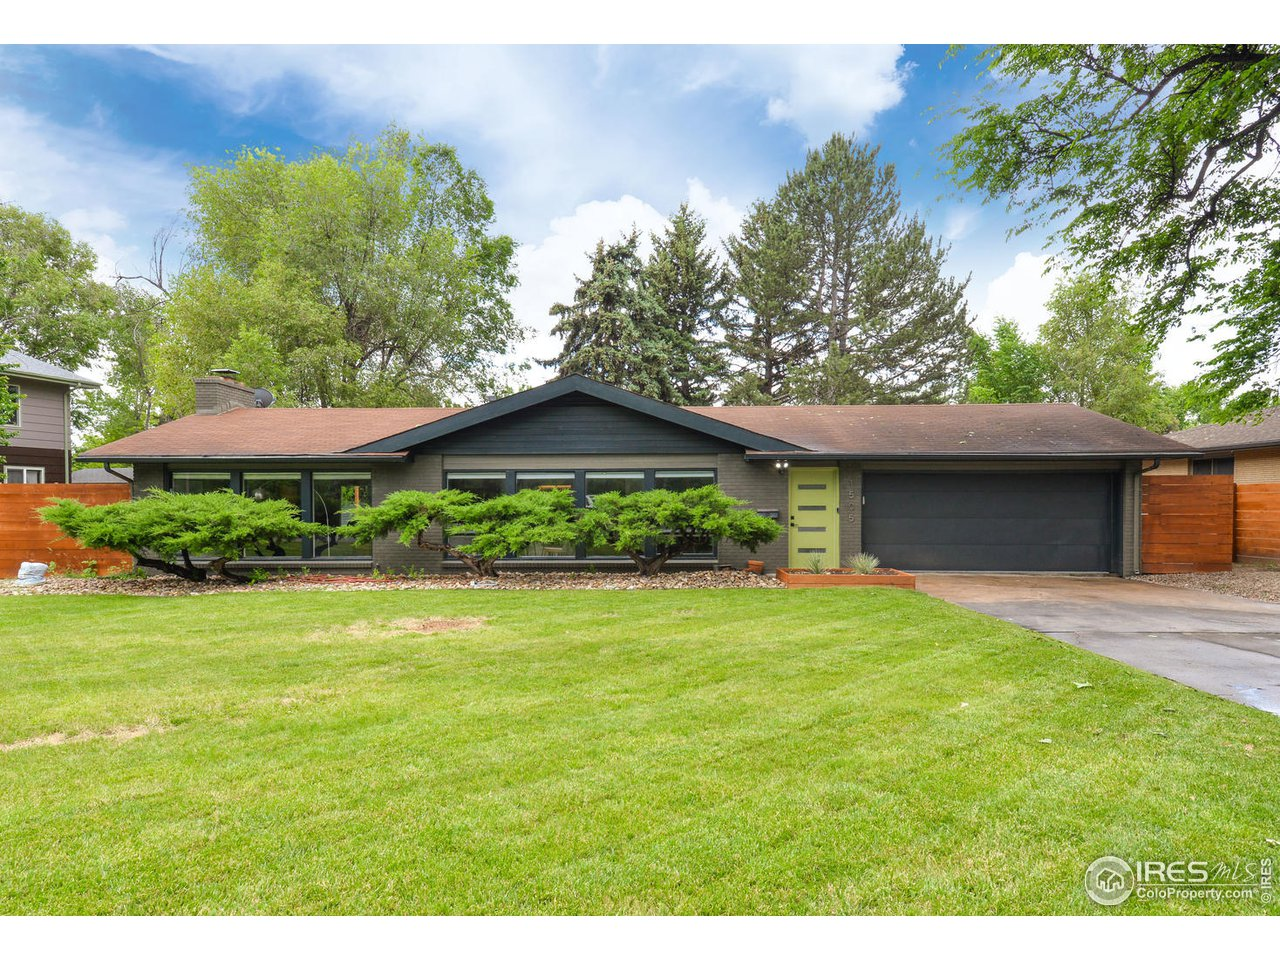 1505 W Mulberry St, Fort Collins CO 80521